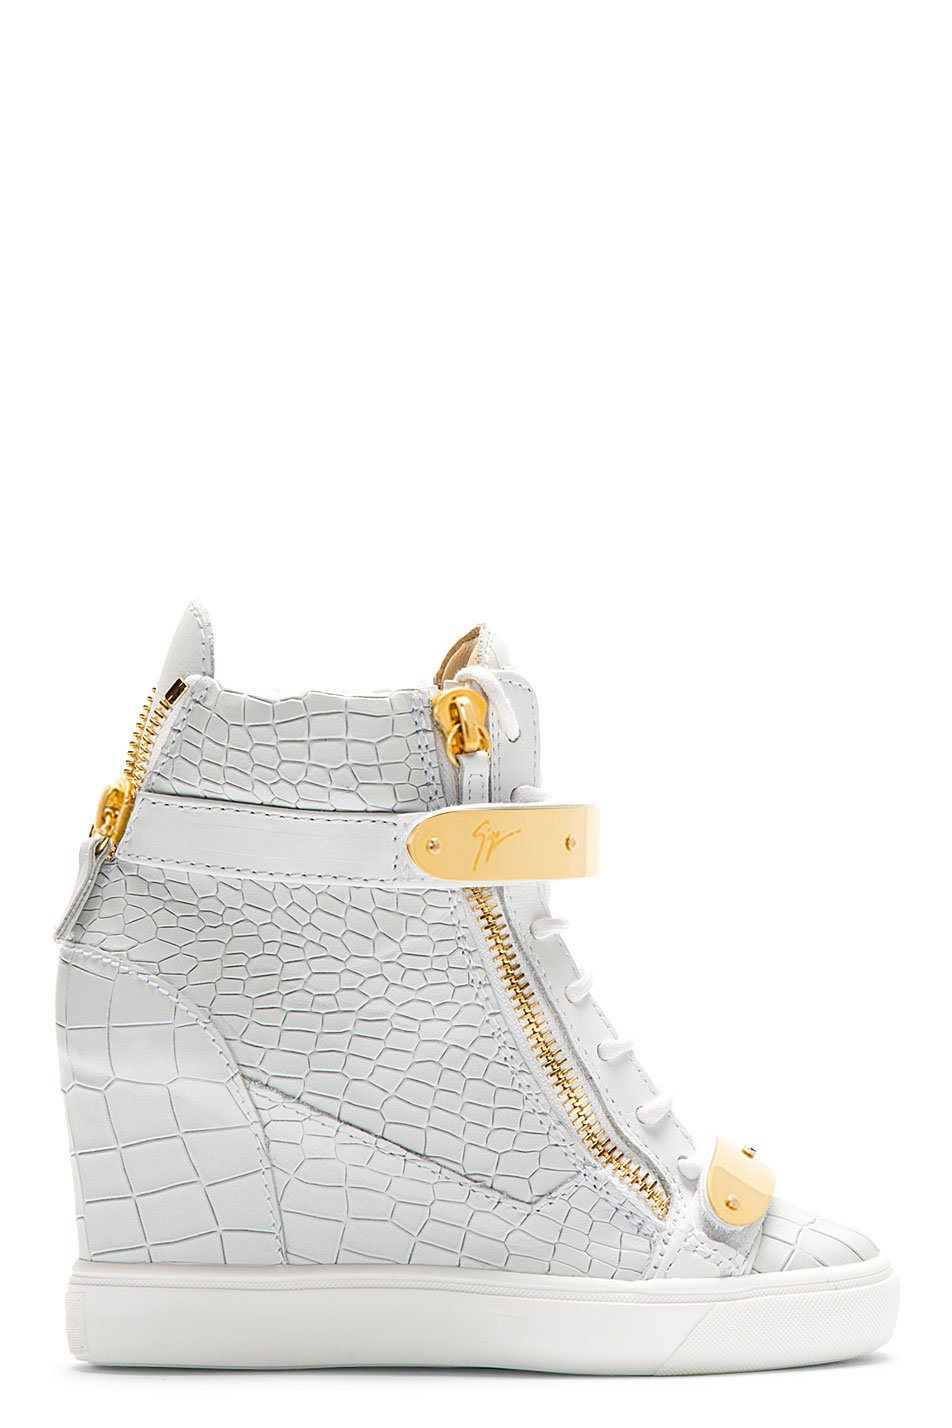 Giuseppe zanotti white lorenz high_top wedge sneakers